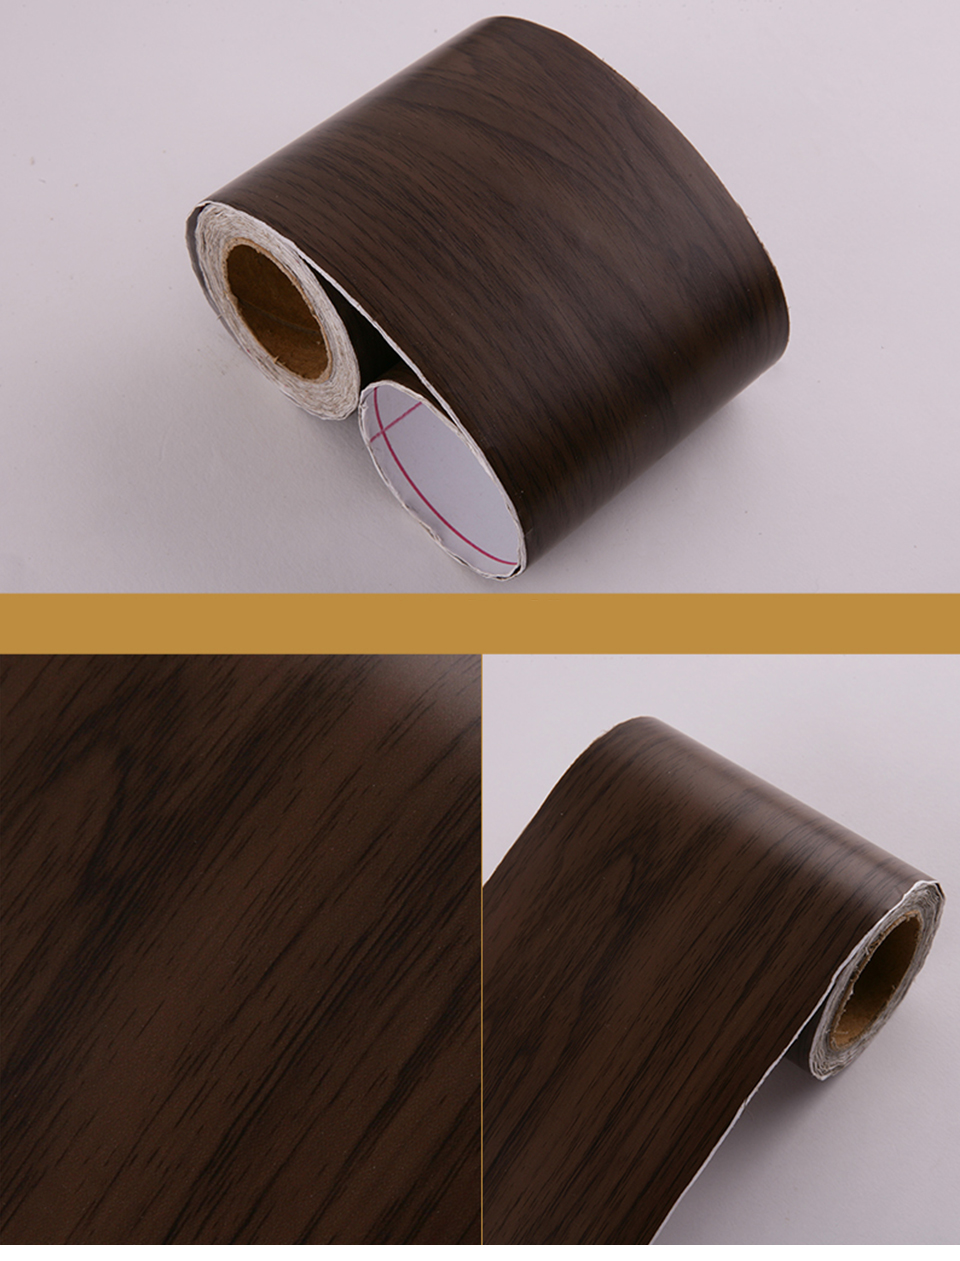 Wood Self Adhesive Window Decal Living Room Floor Border Skirting Contact Paper Waterproof Waist Line Wallpaper Home Improvement Hf7240d6d31a84e5eb4e0ab5815c74d85g